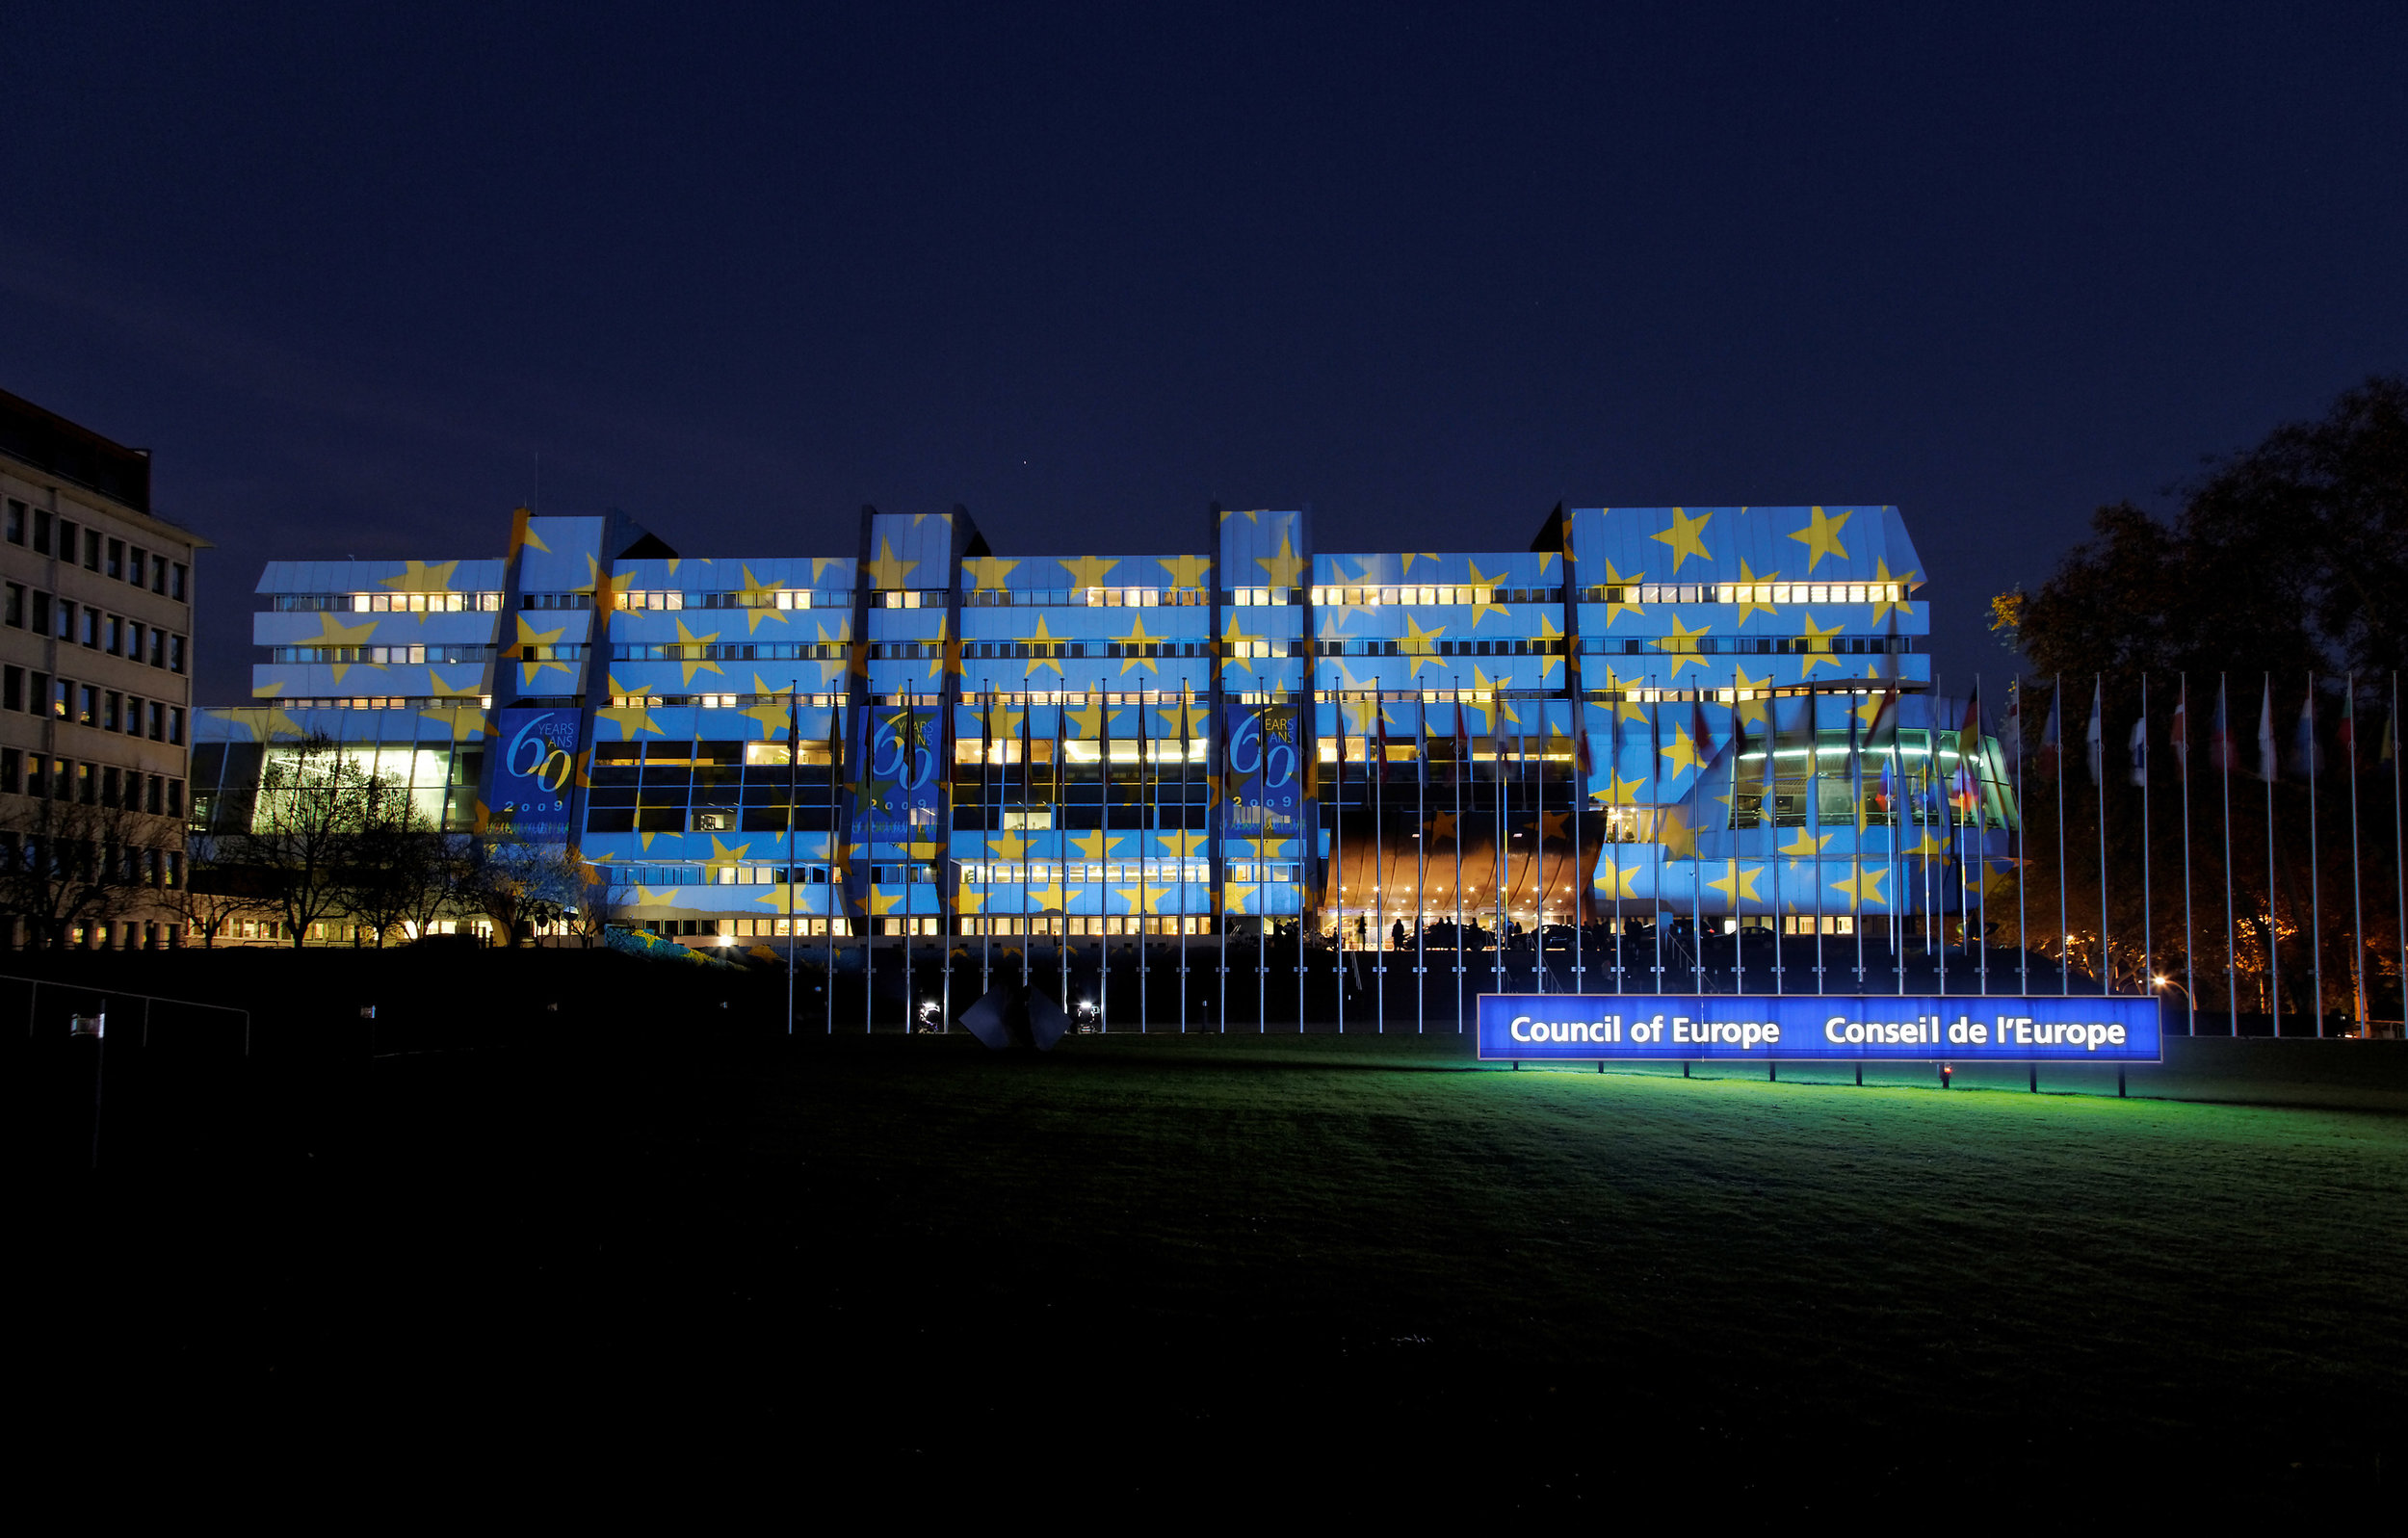 STRASBOURG COUNCIL OF EUROPE, FRANCE